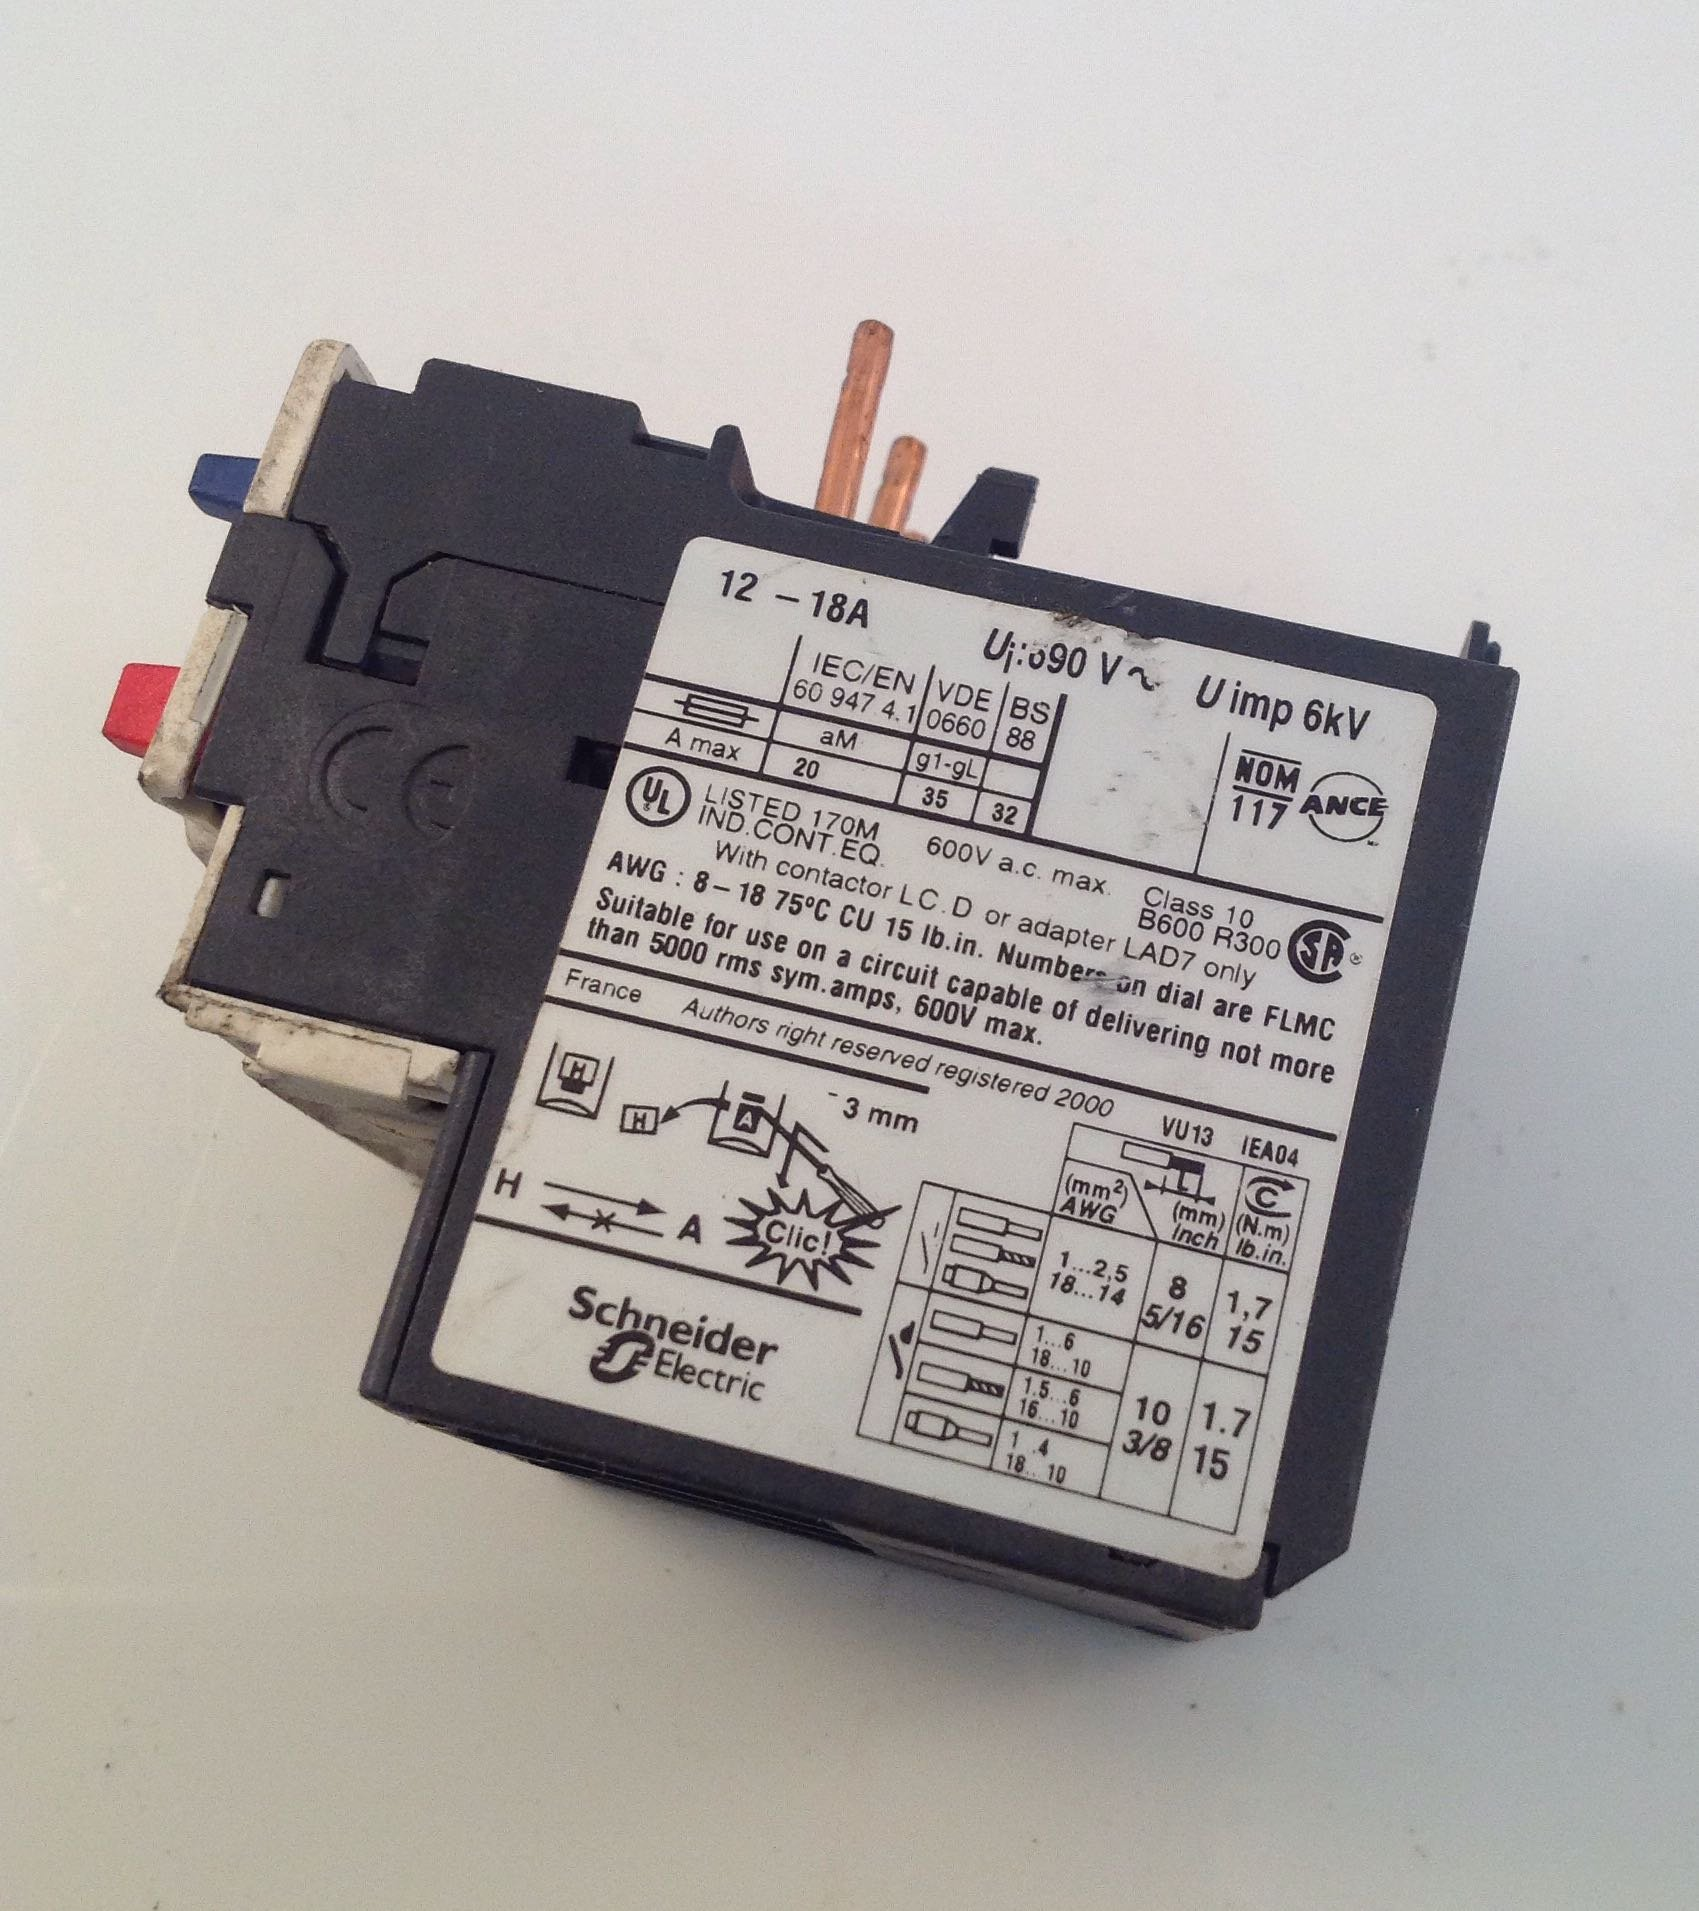 Telemecanique LRD21 Relay; Overload; Class 10; 12 TO 18 A; Used with TeSys D Contactors